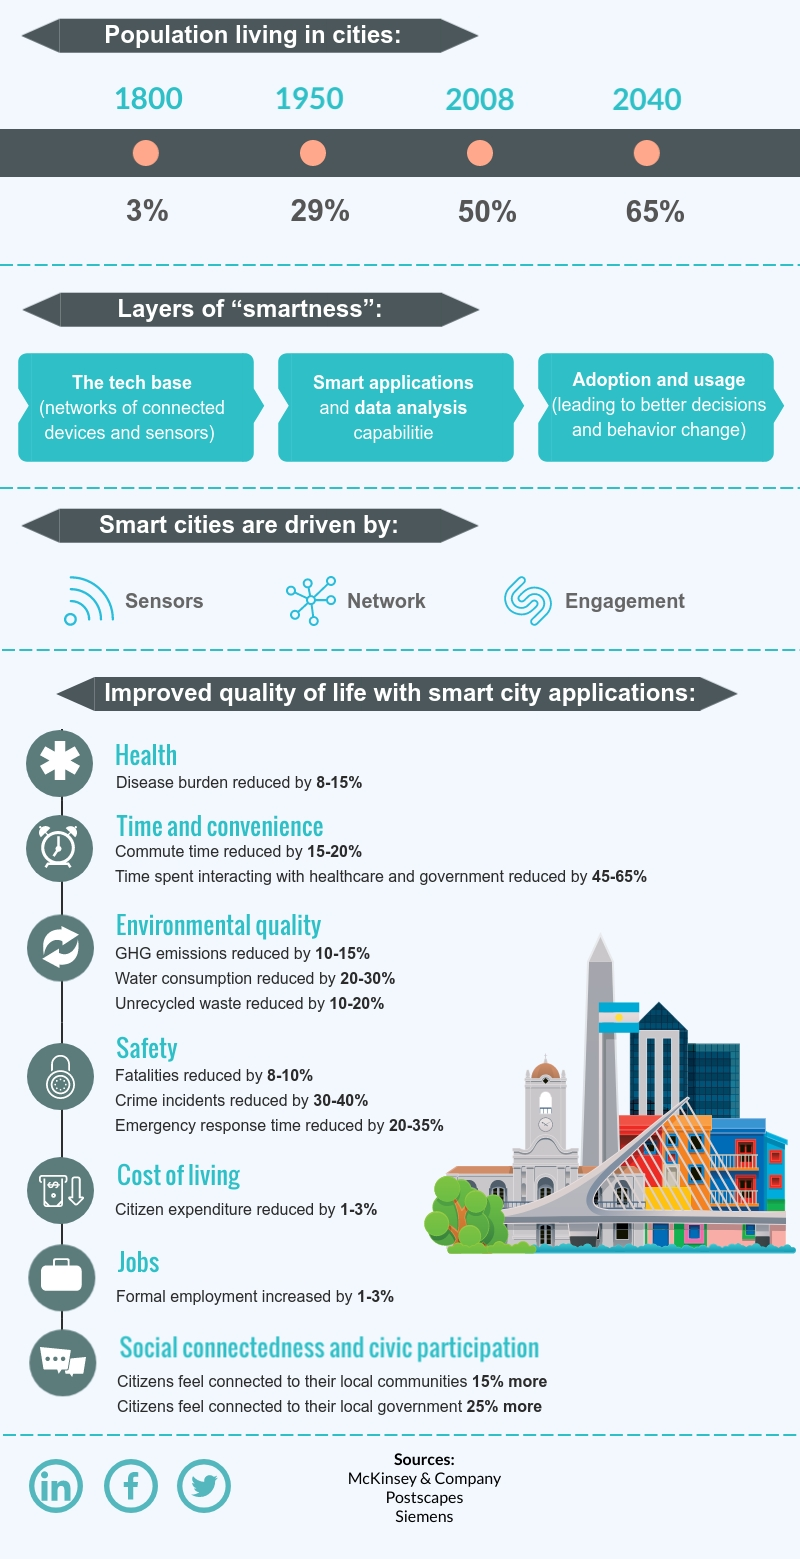 Where are we now? Well, there is an entirely different story as we are experiencing a wave of smart cities, able to ensure security for people and offer efficient solutions for legacy challenges. Less pollution, lower crime rate, and fewer diseases are only a few benefits provided by smart cities.